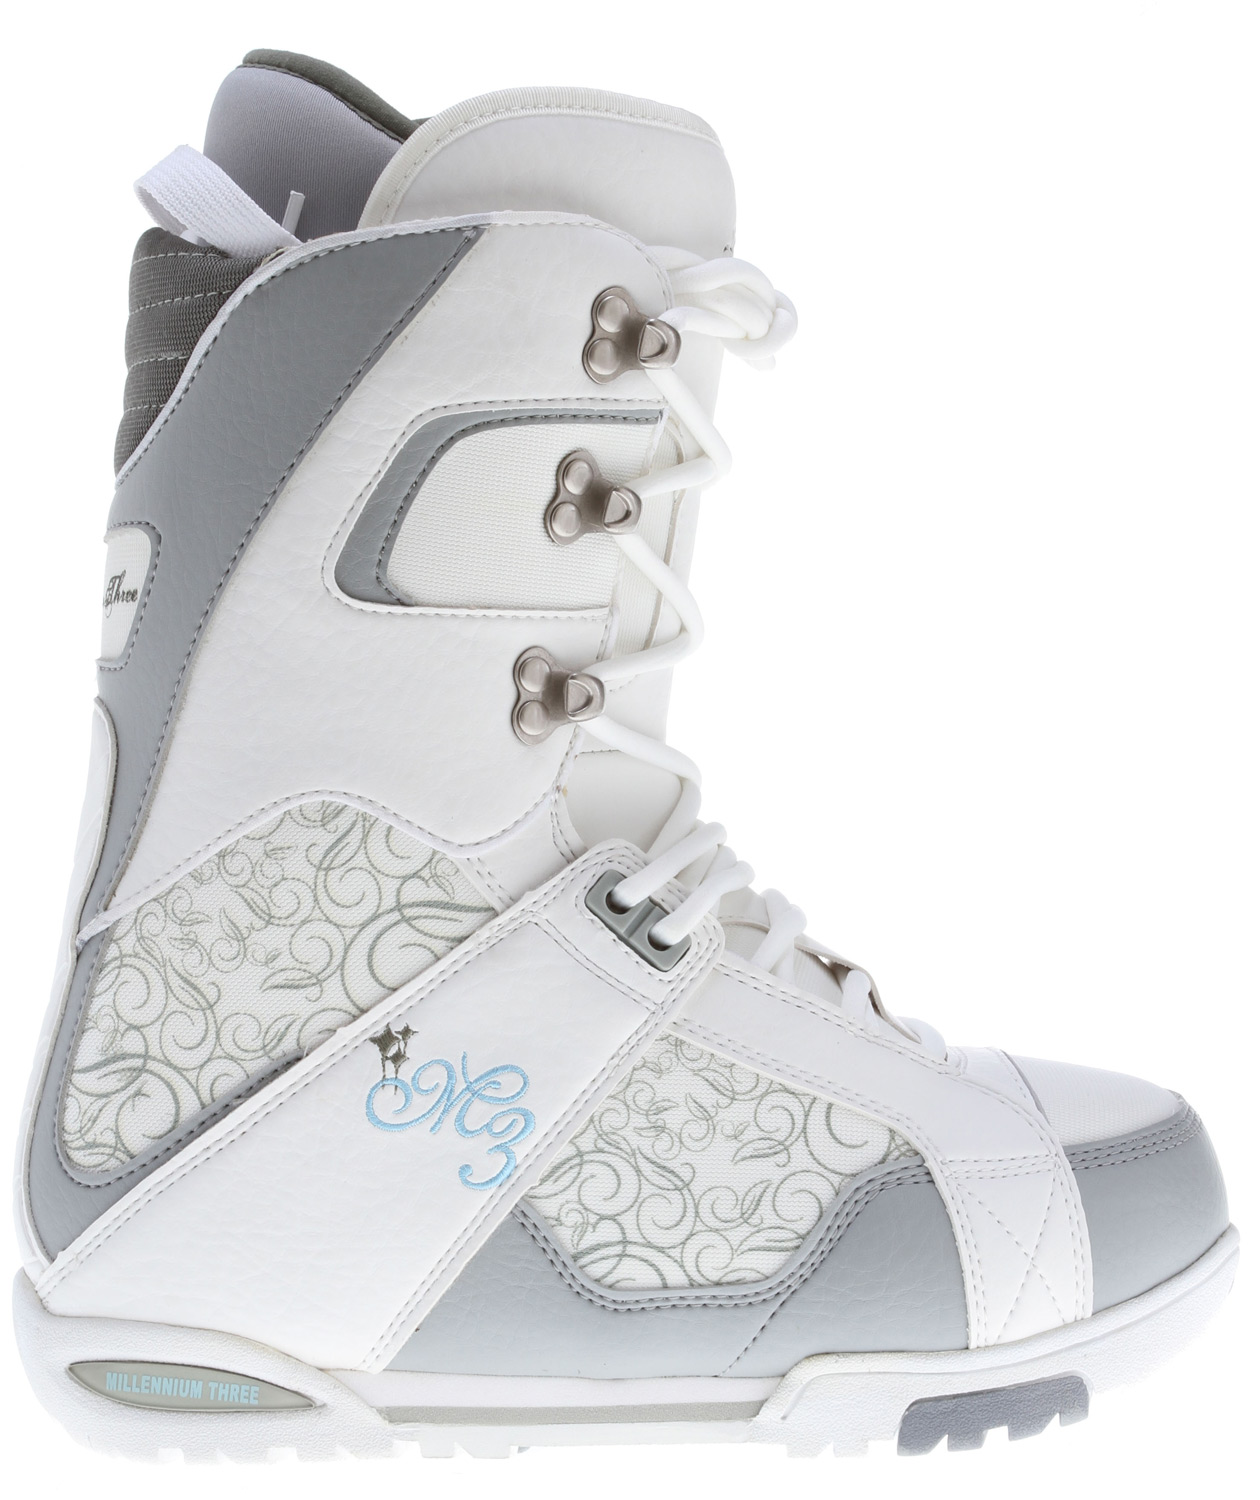 Snowboard These snowboarding boots from M3 offer style, comfort and performance. These white boots have a great stiff fit and padded design. Key Features of the M3 Venus Snowboard Boots: Integrated liner Speed hook lacing system Full ankle support Cup sole Synthetic and stitched upper Pull strap - $62.95